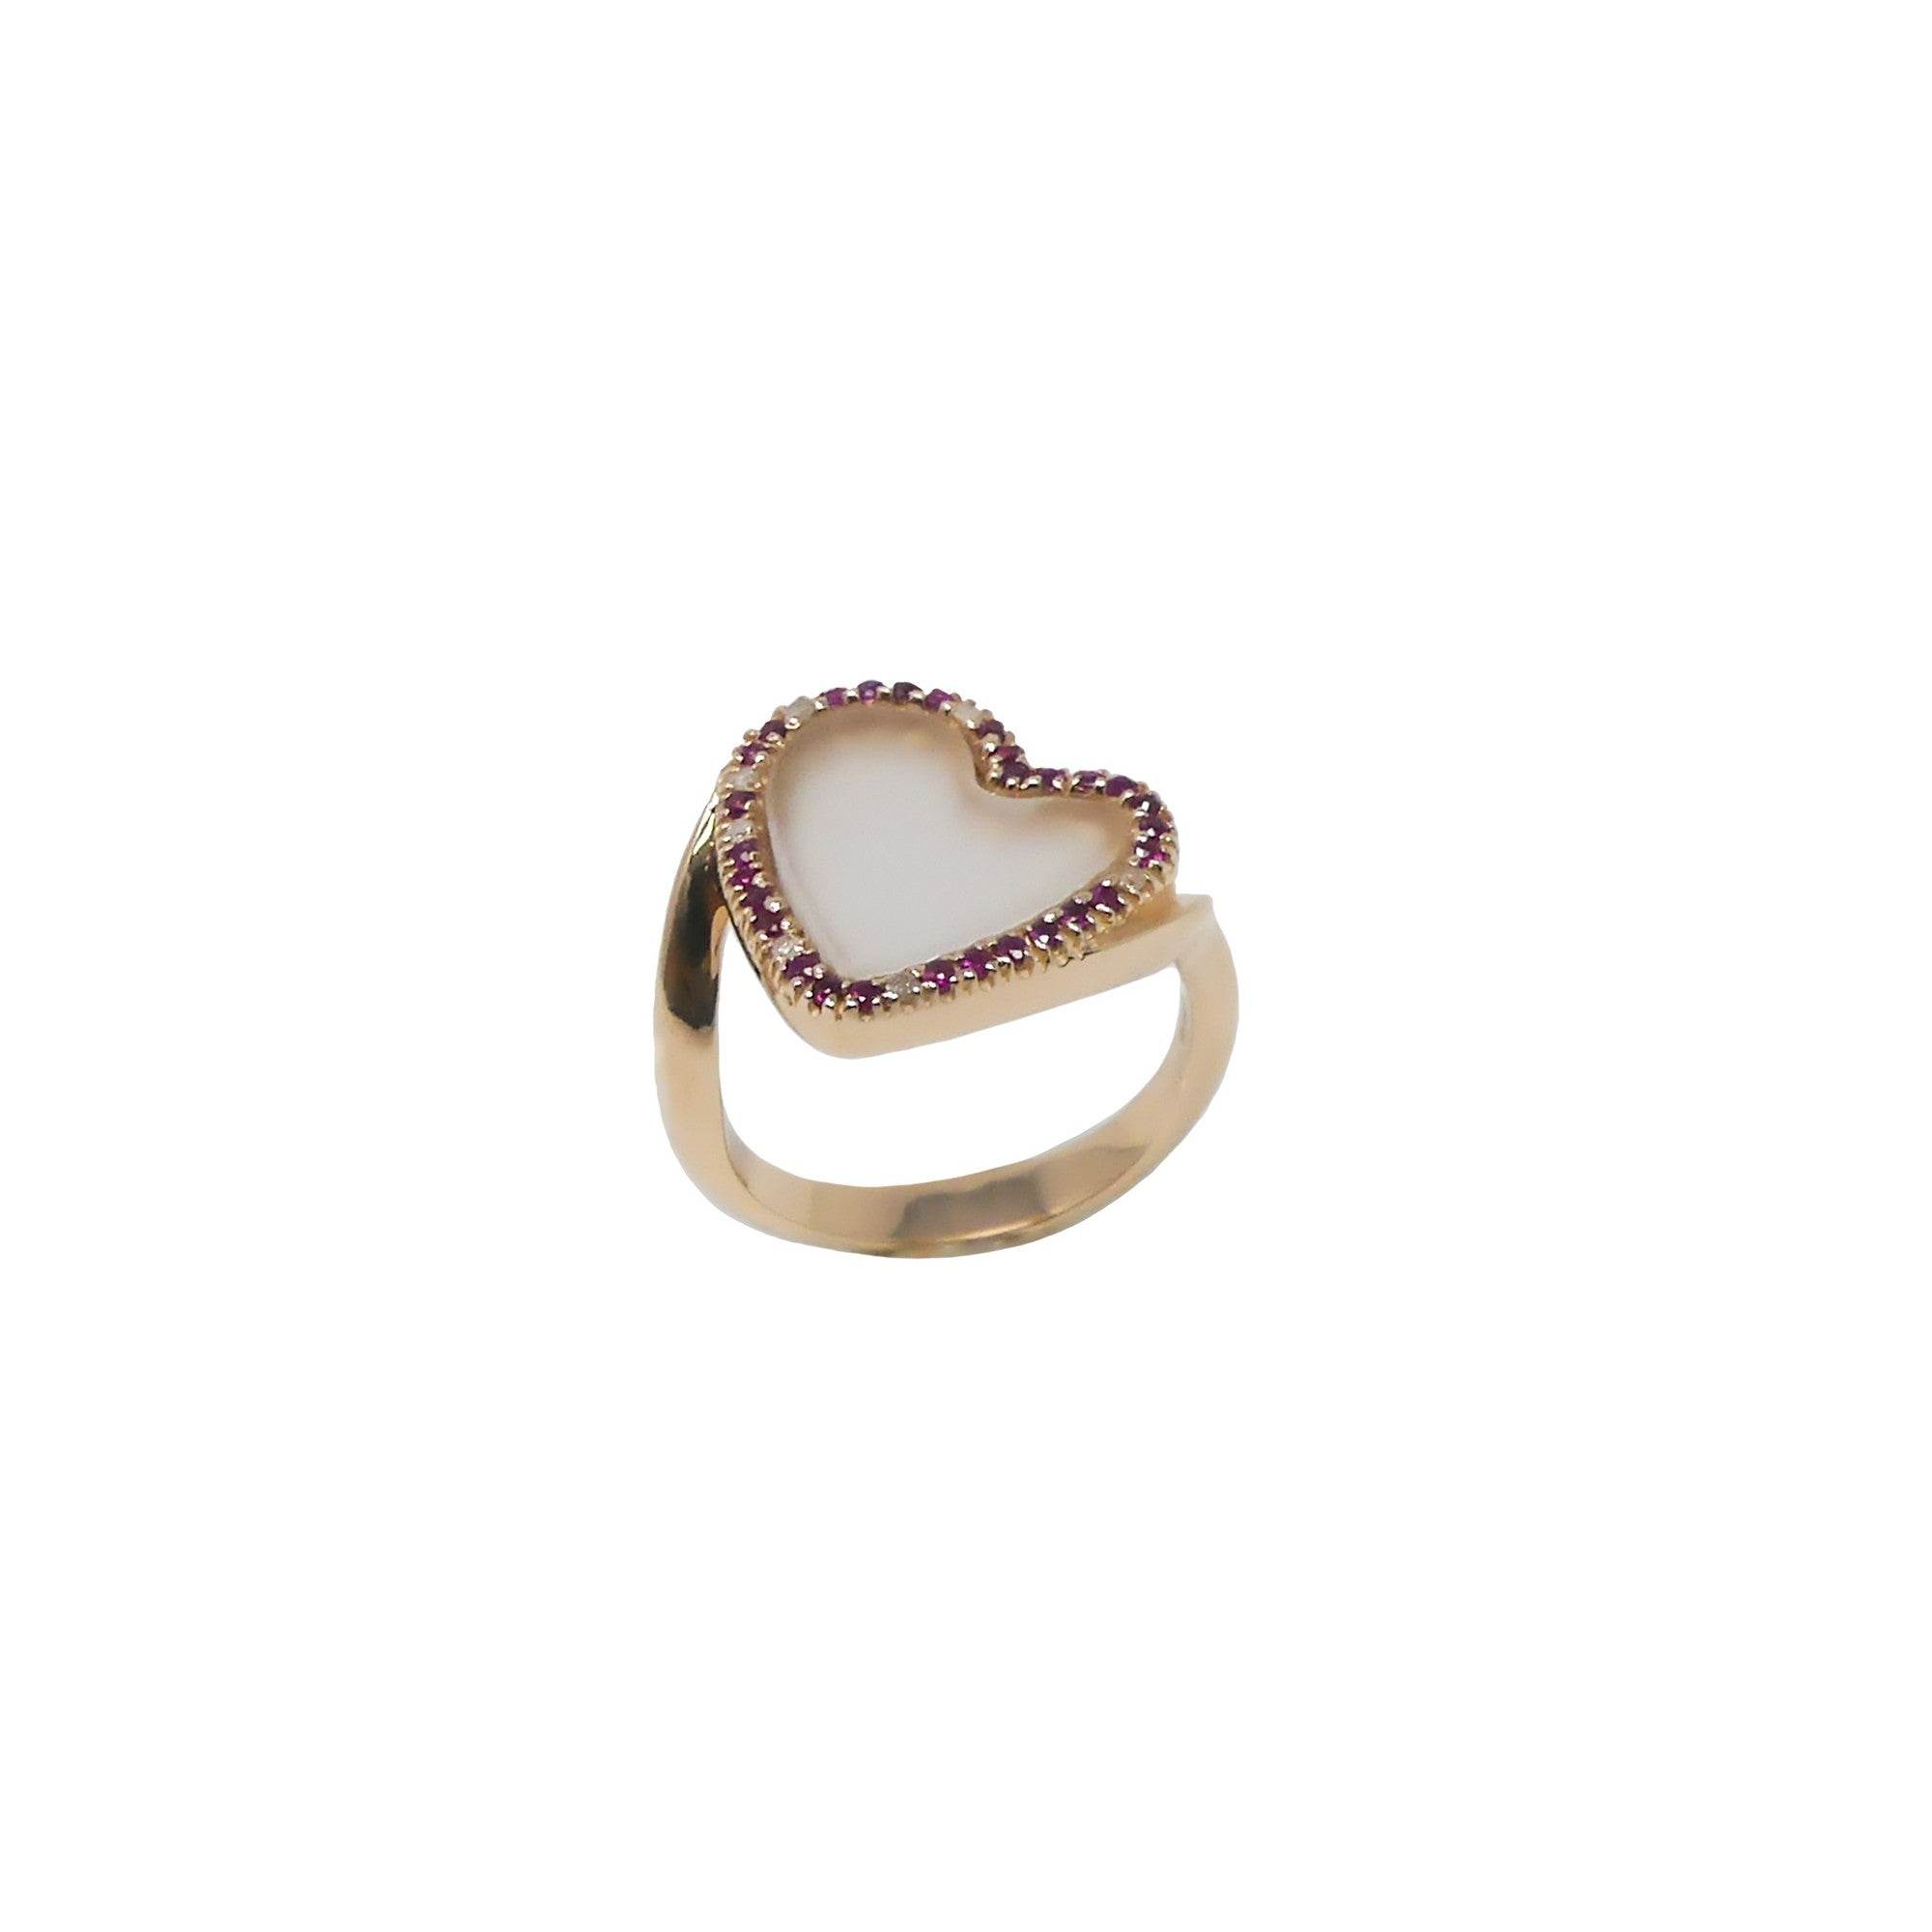 Pria De Ma 14kt Rose Gold Ring Ice Diamonds Rubies